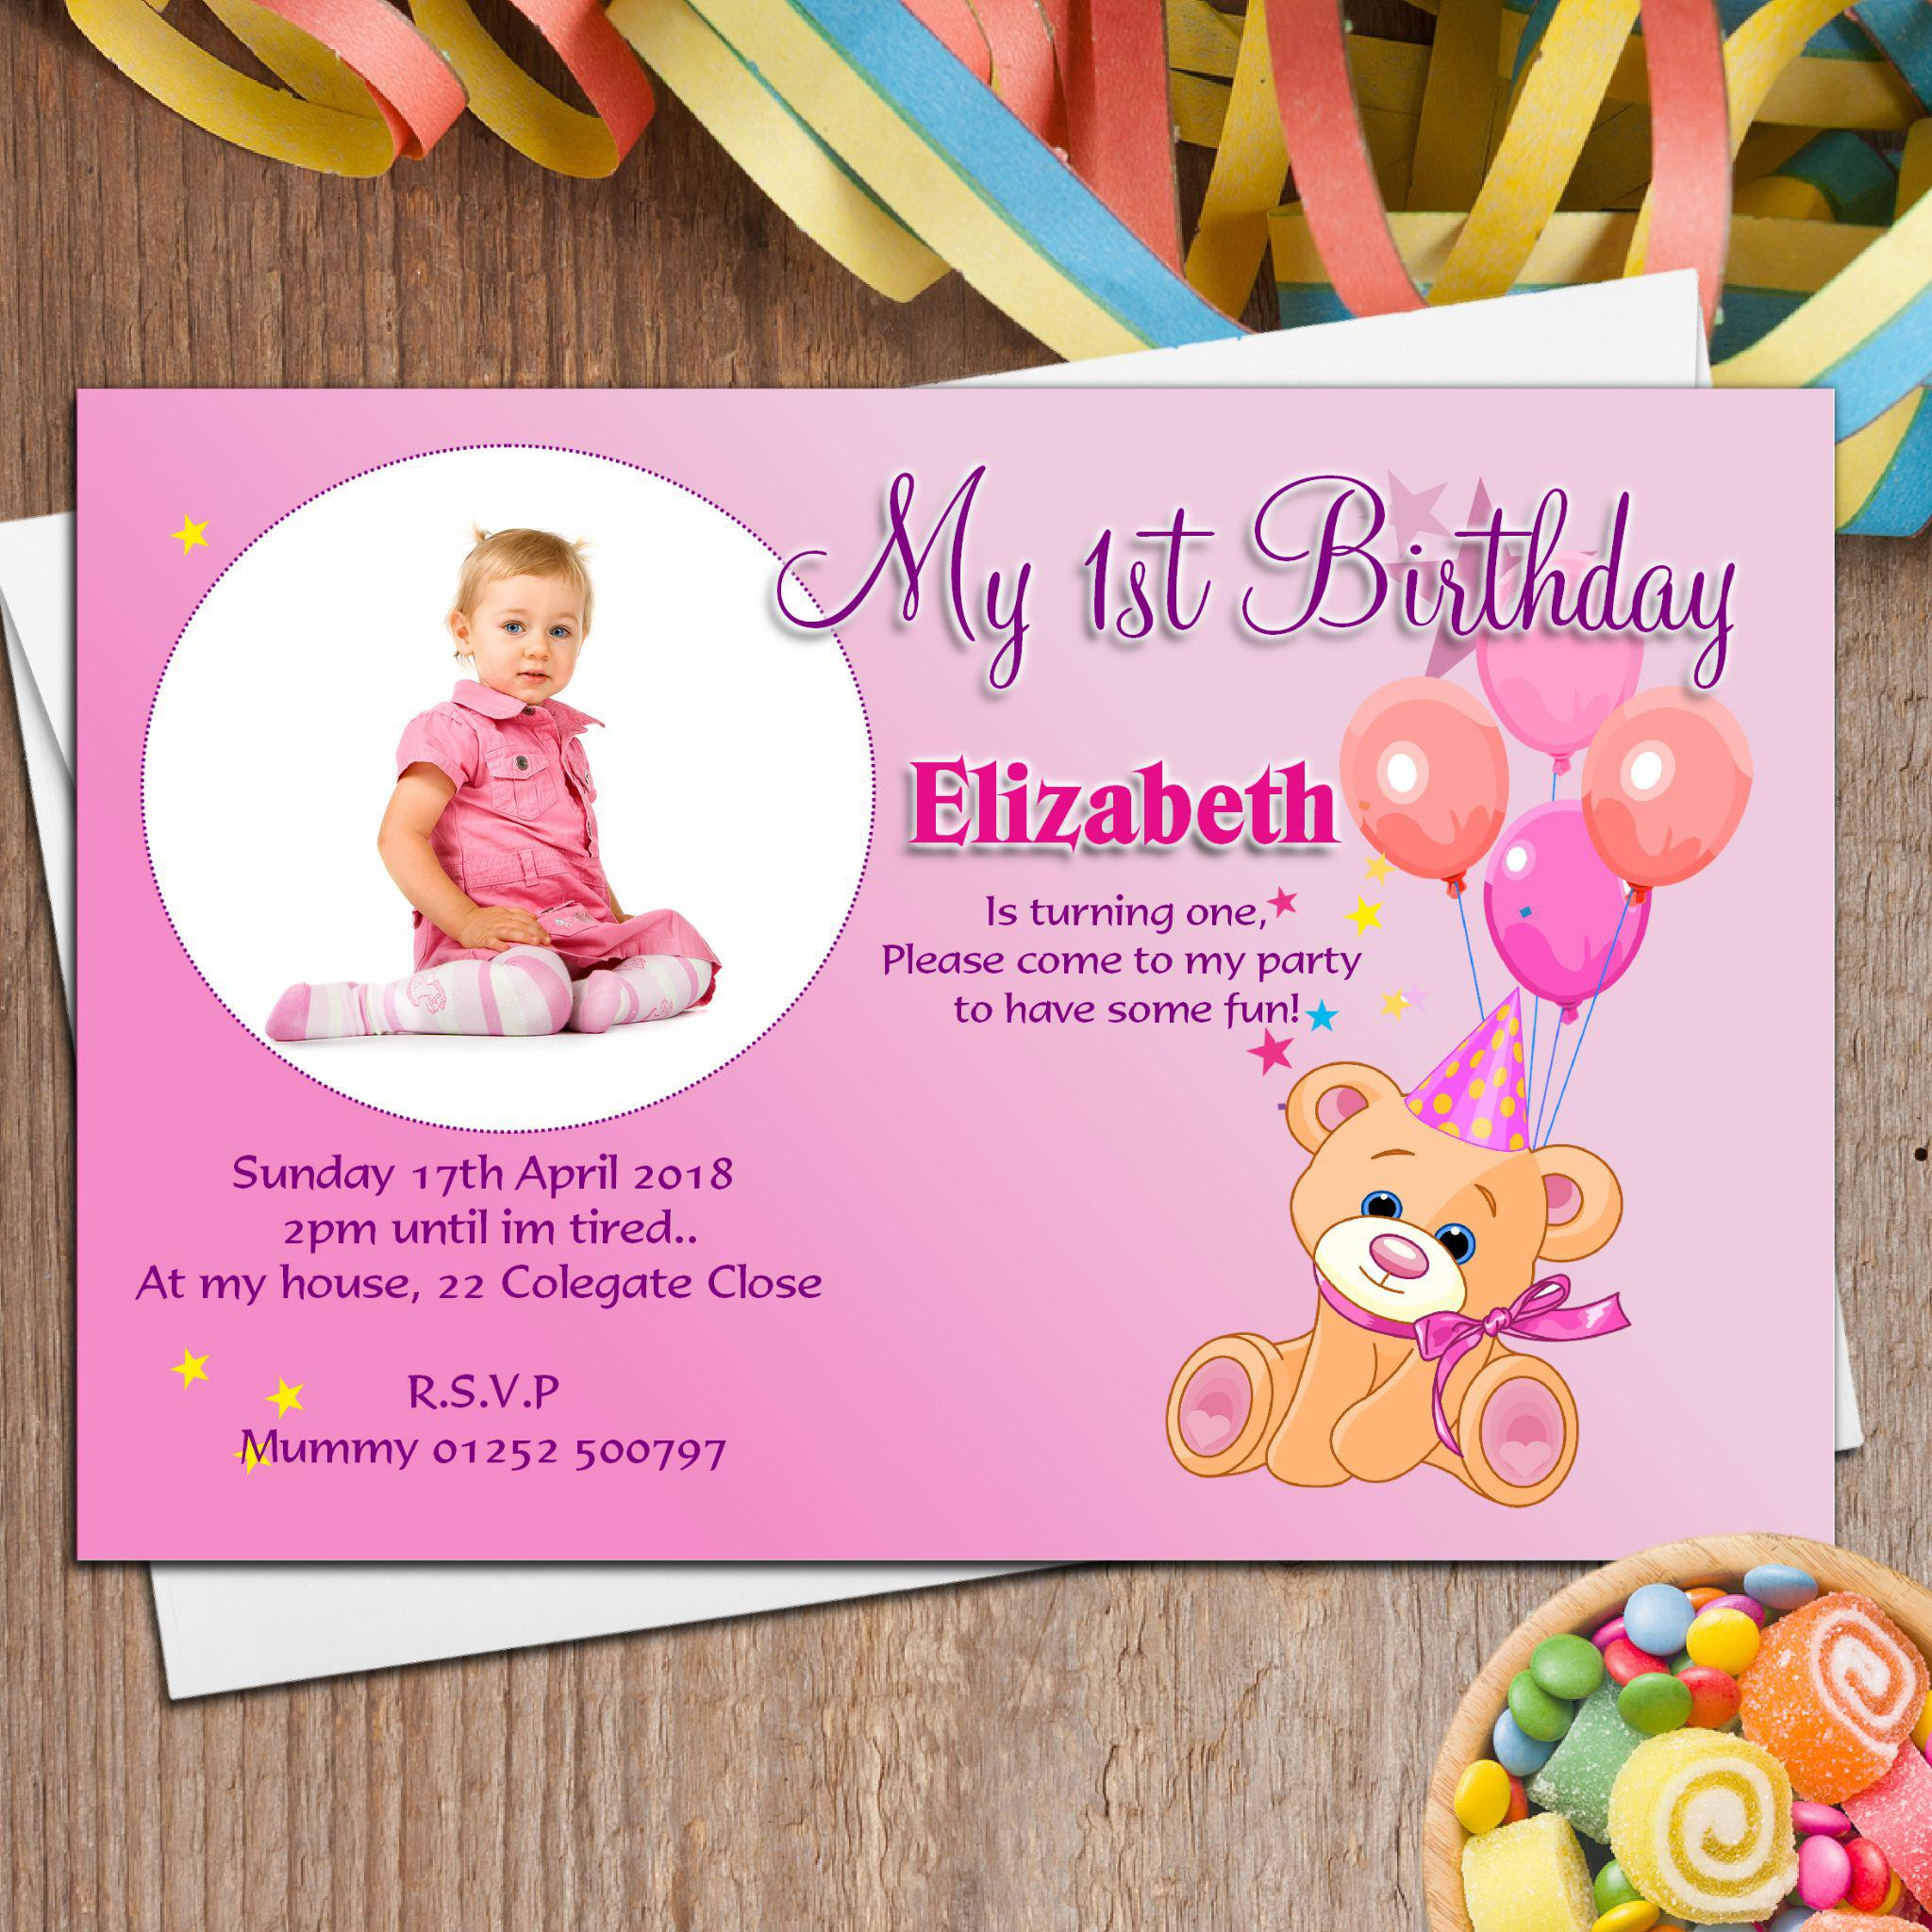 Birthday Invitation Cards Personalized Teddy Party For Girl